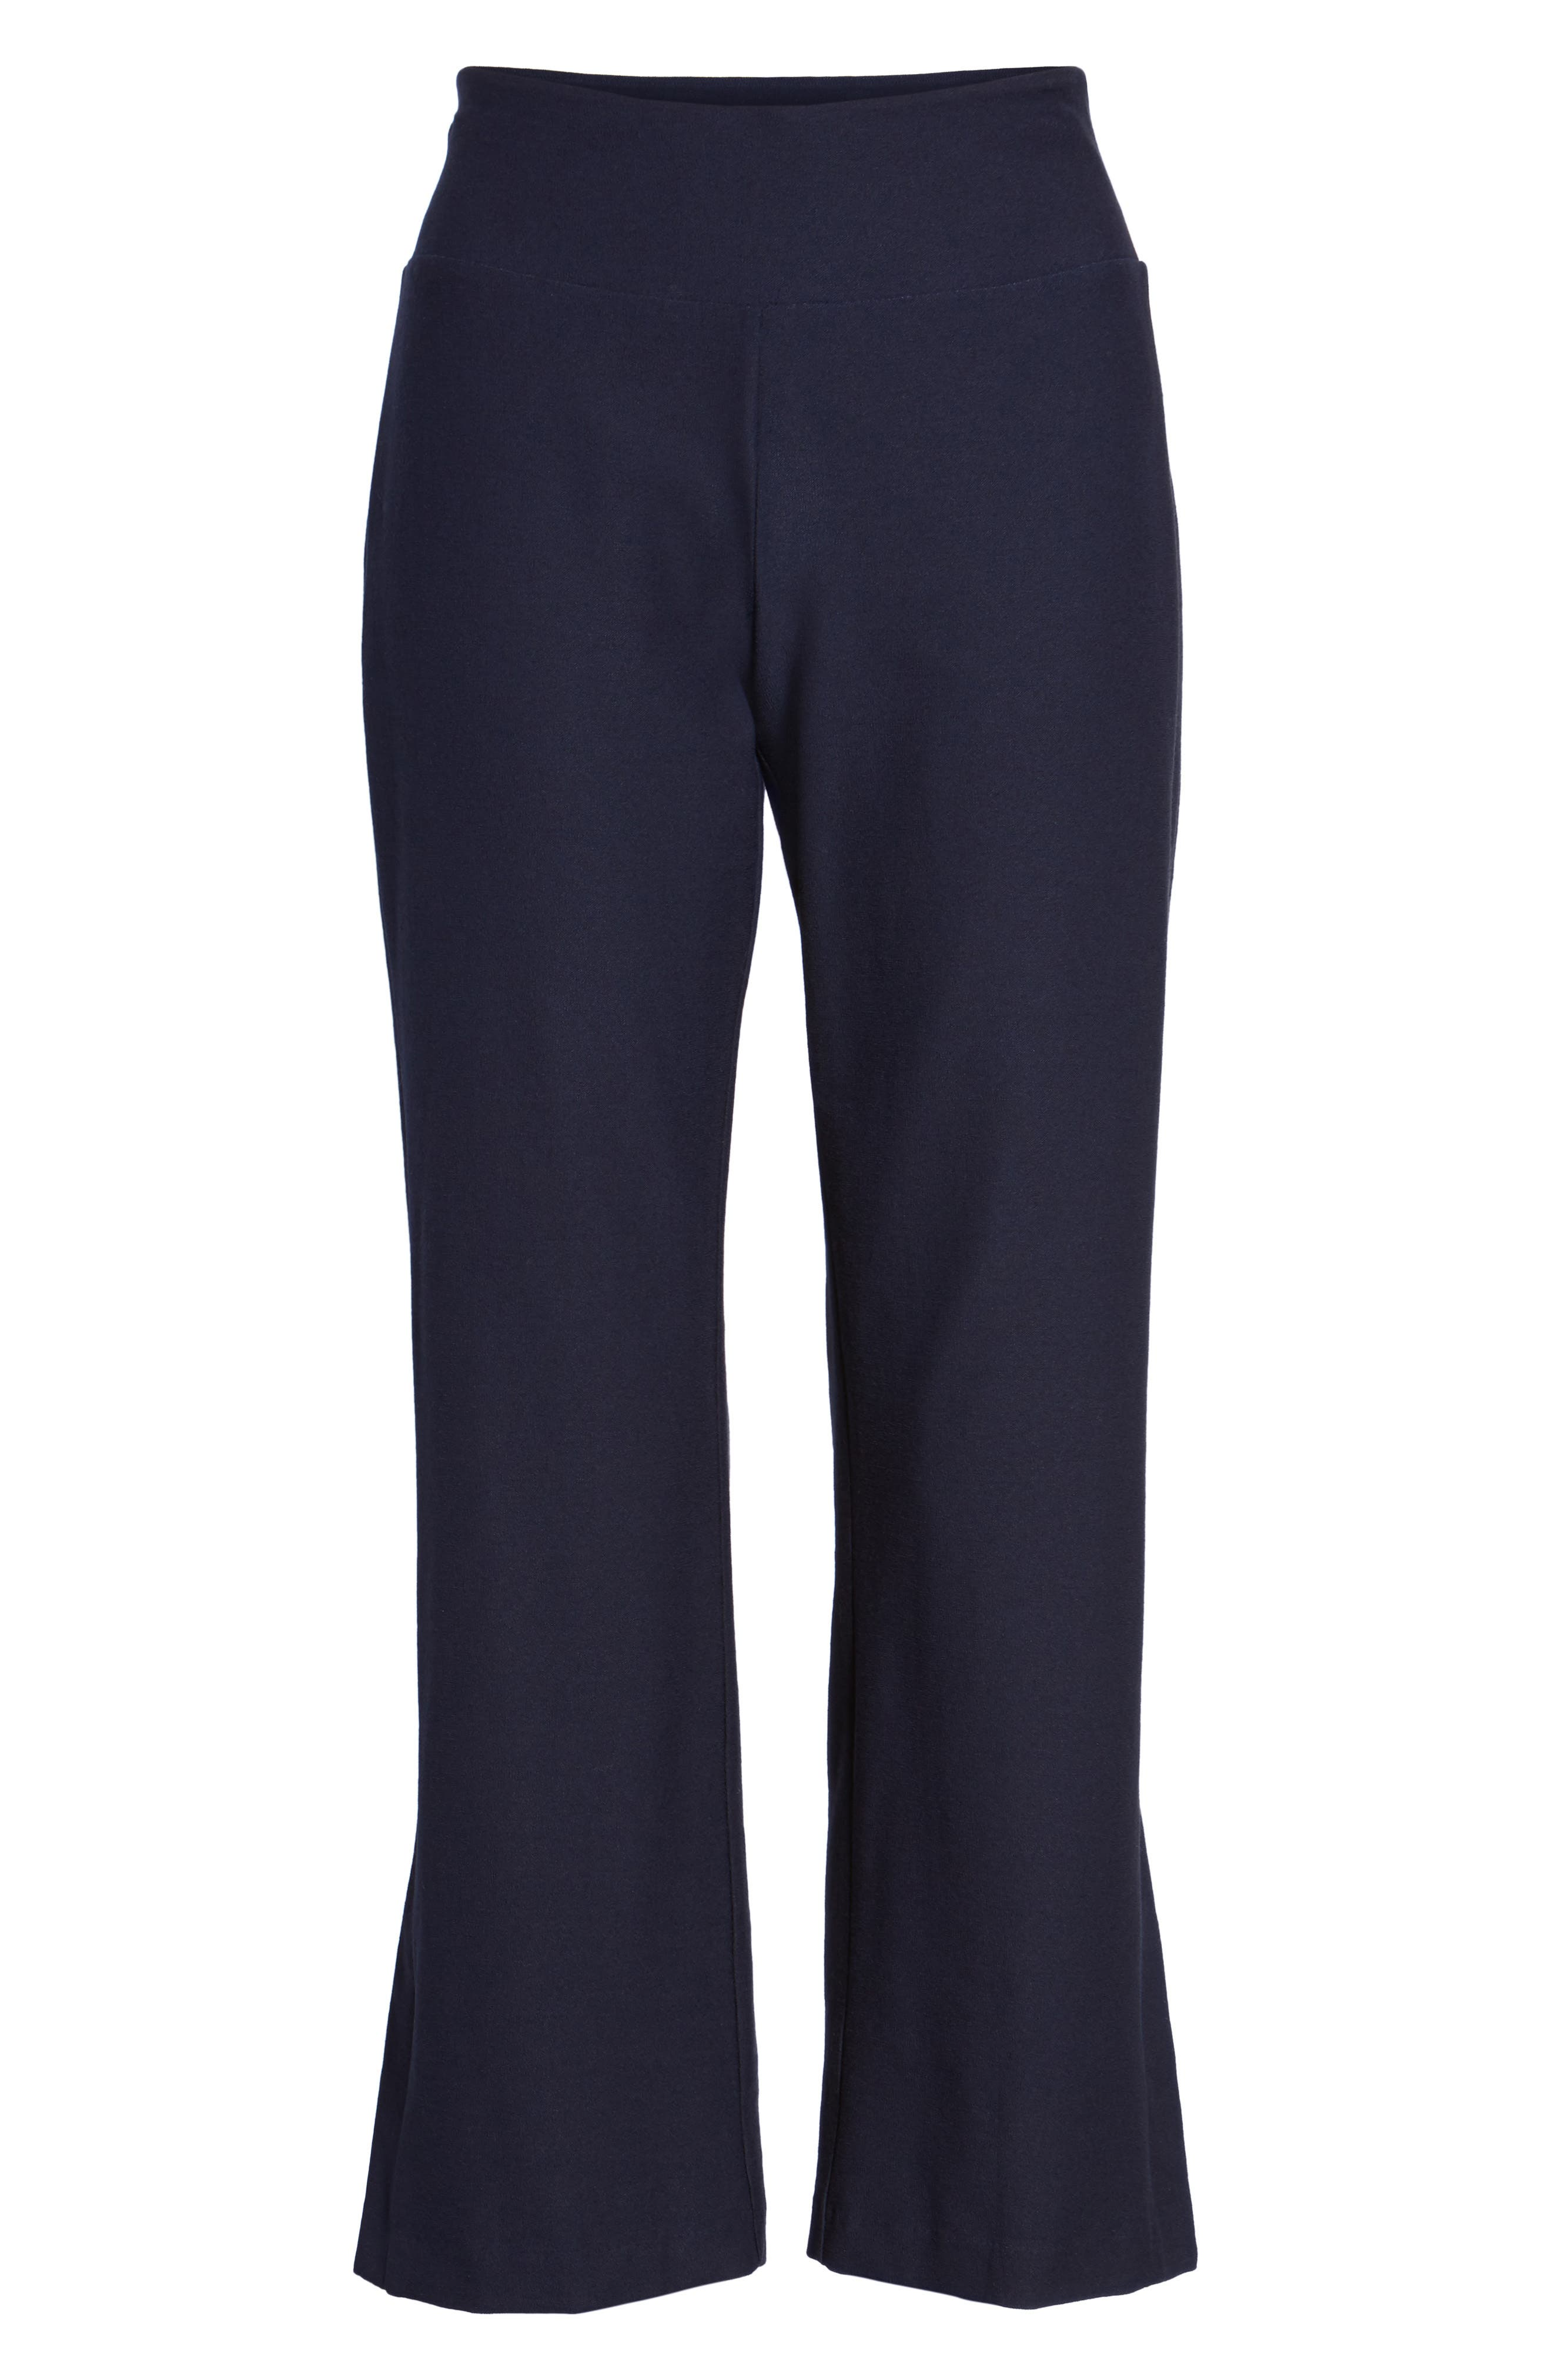 Bootcut Crop Pants,                             Alternate thumbnail 7, color,                             Midnight